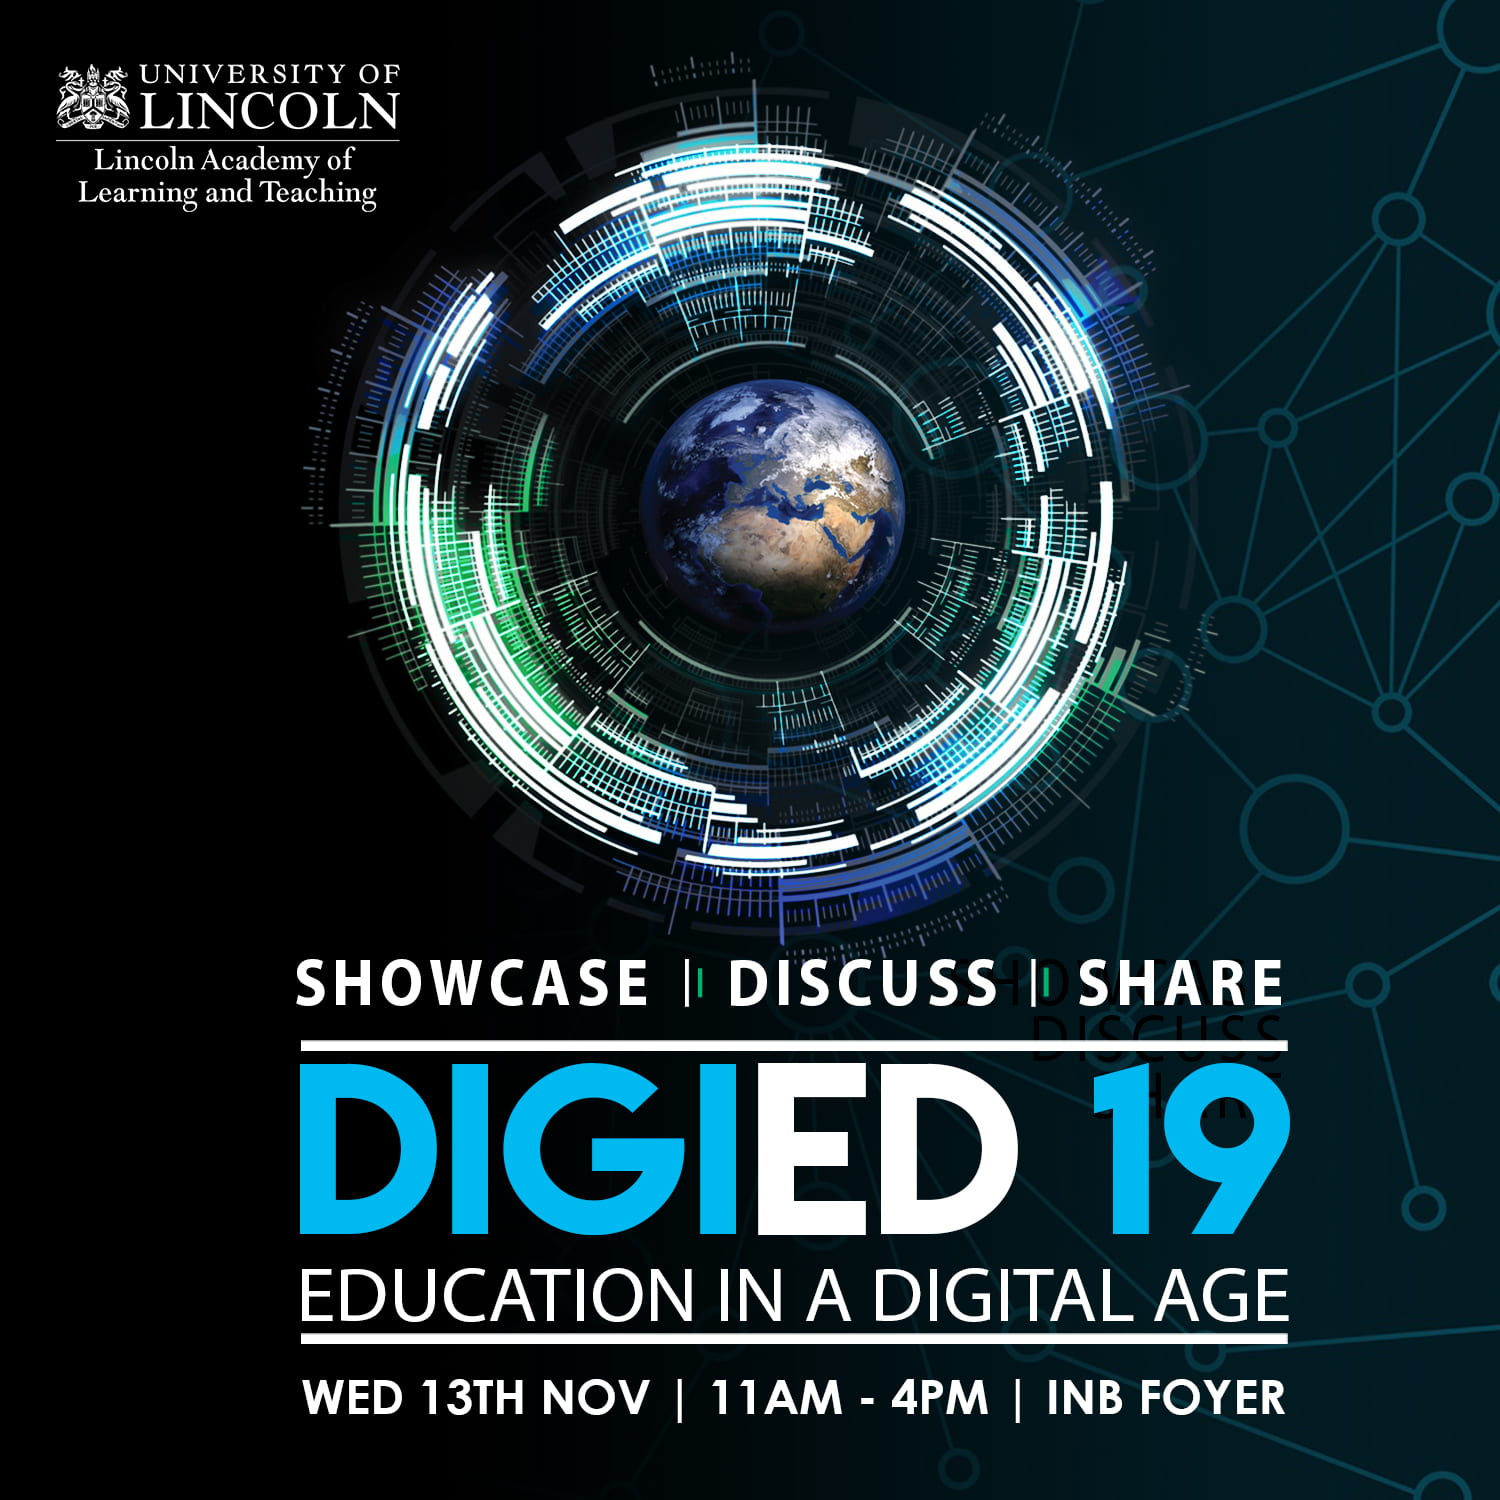 Save the Date – Digied19: Education in a Digital Age event